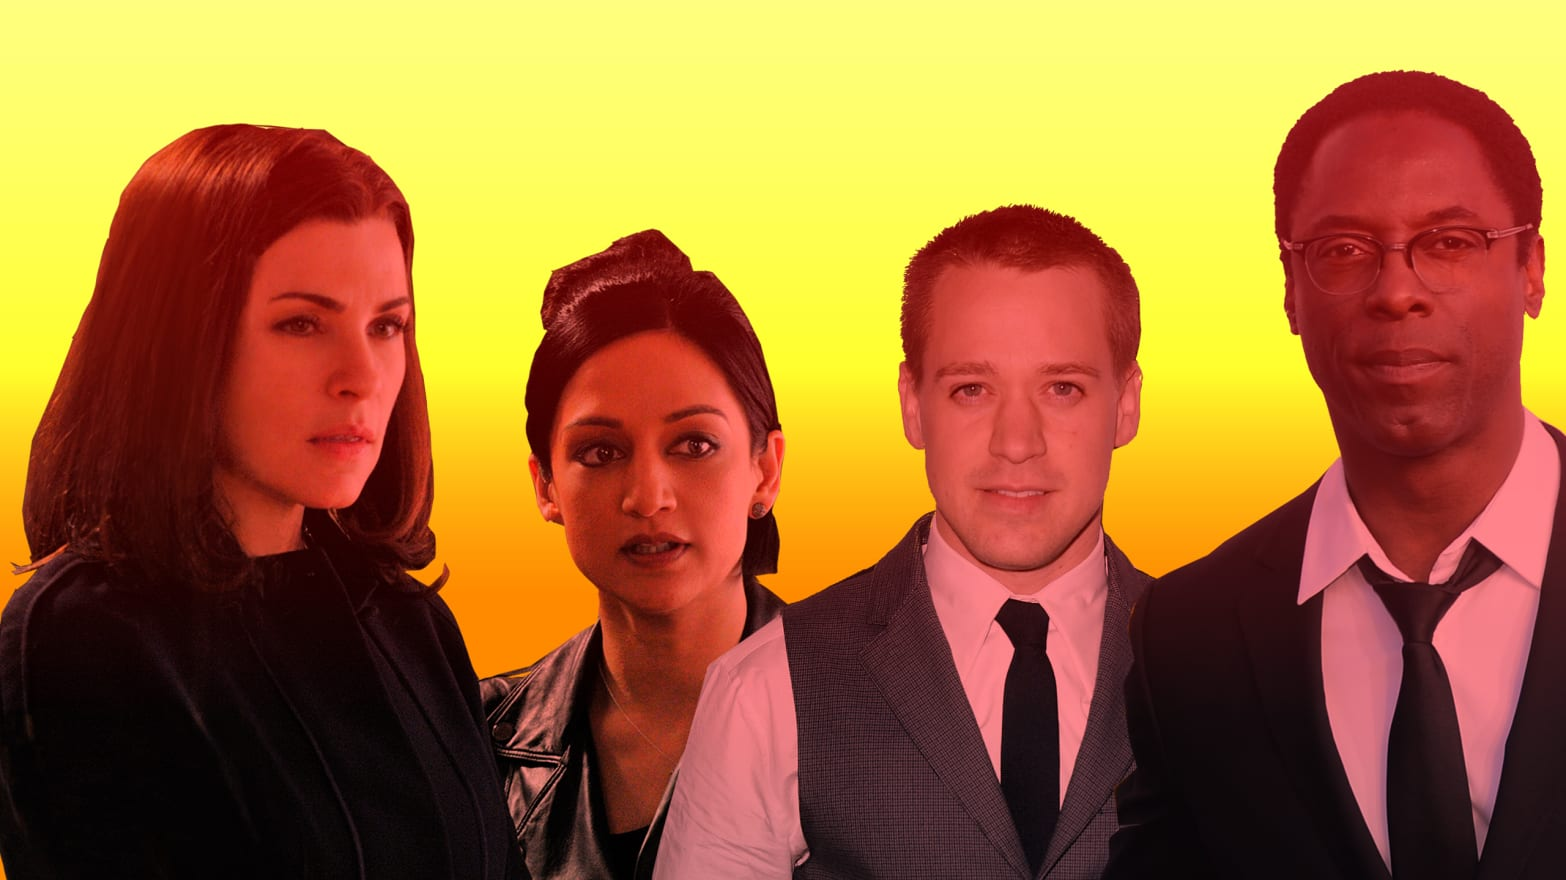 Tvs Most Notorious Real Life Feuds The Good Wife 90210